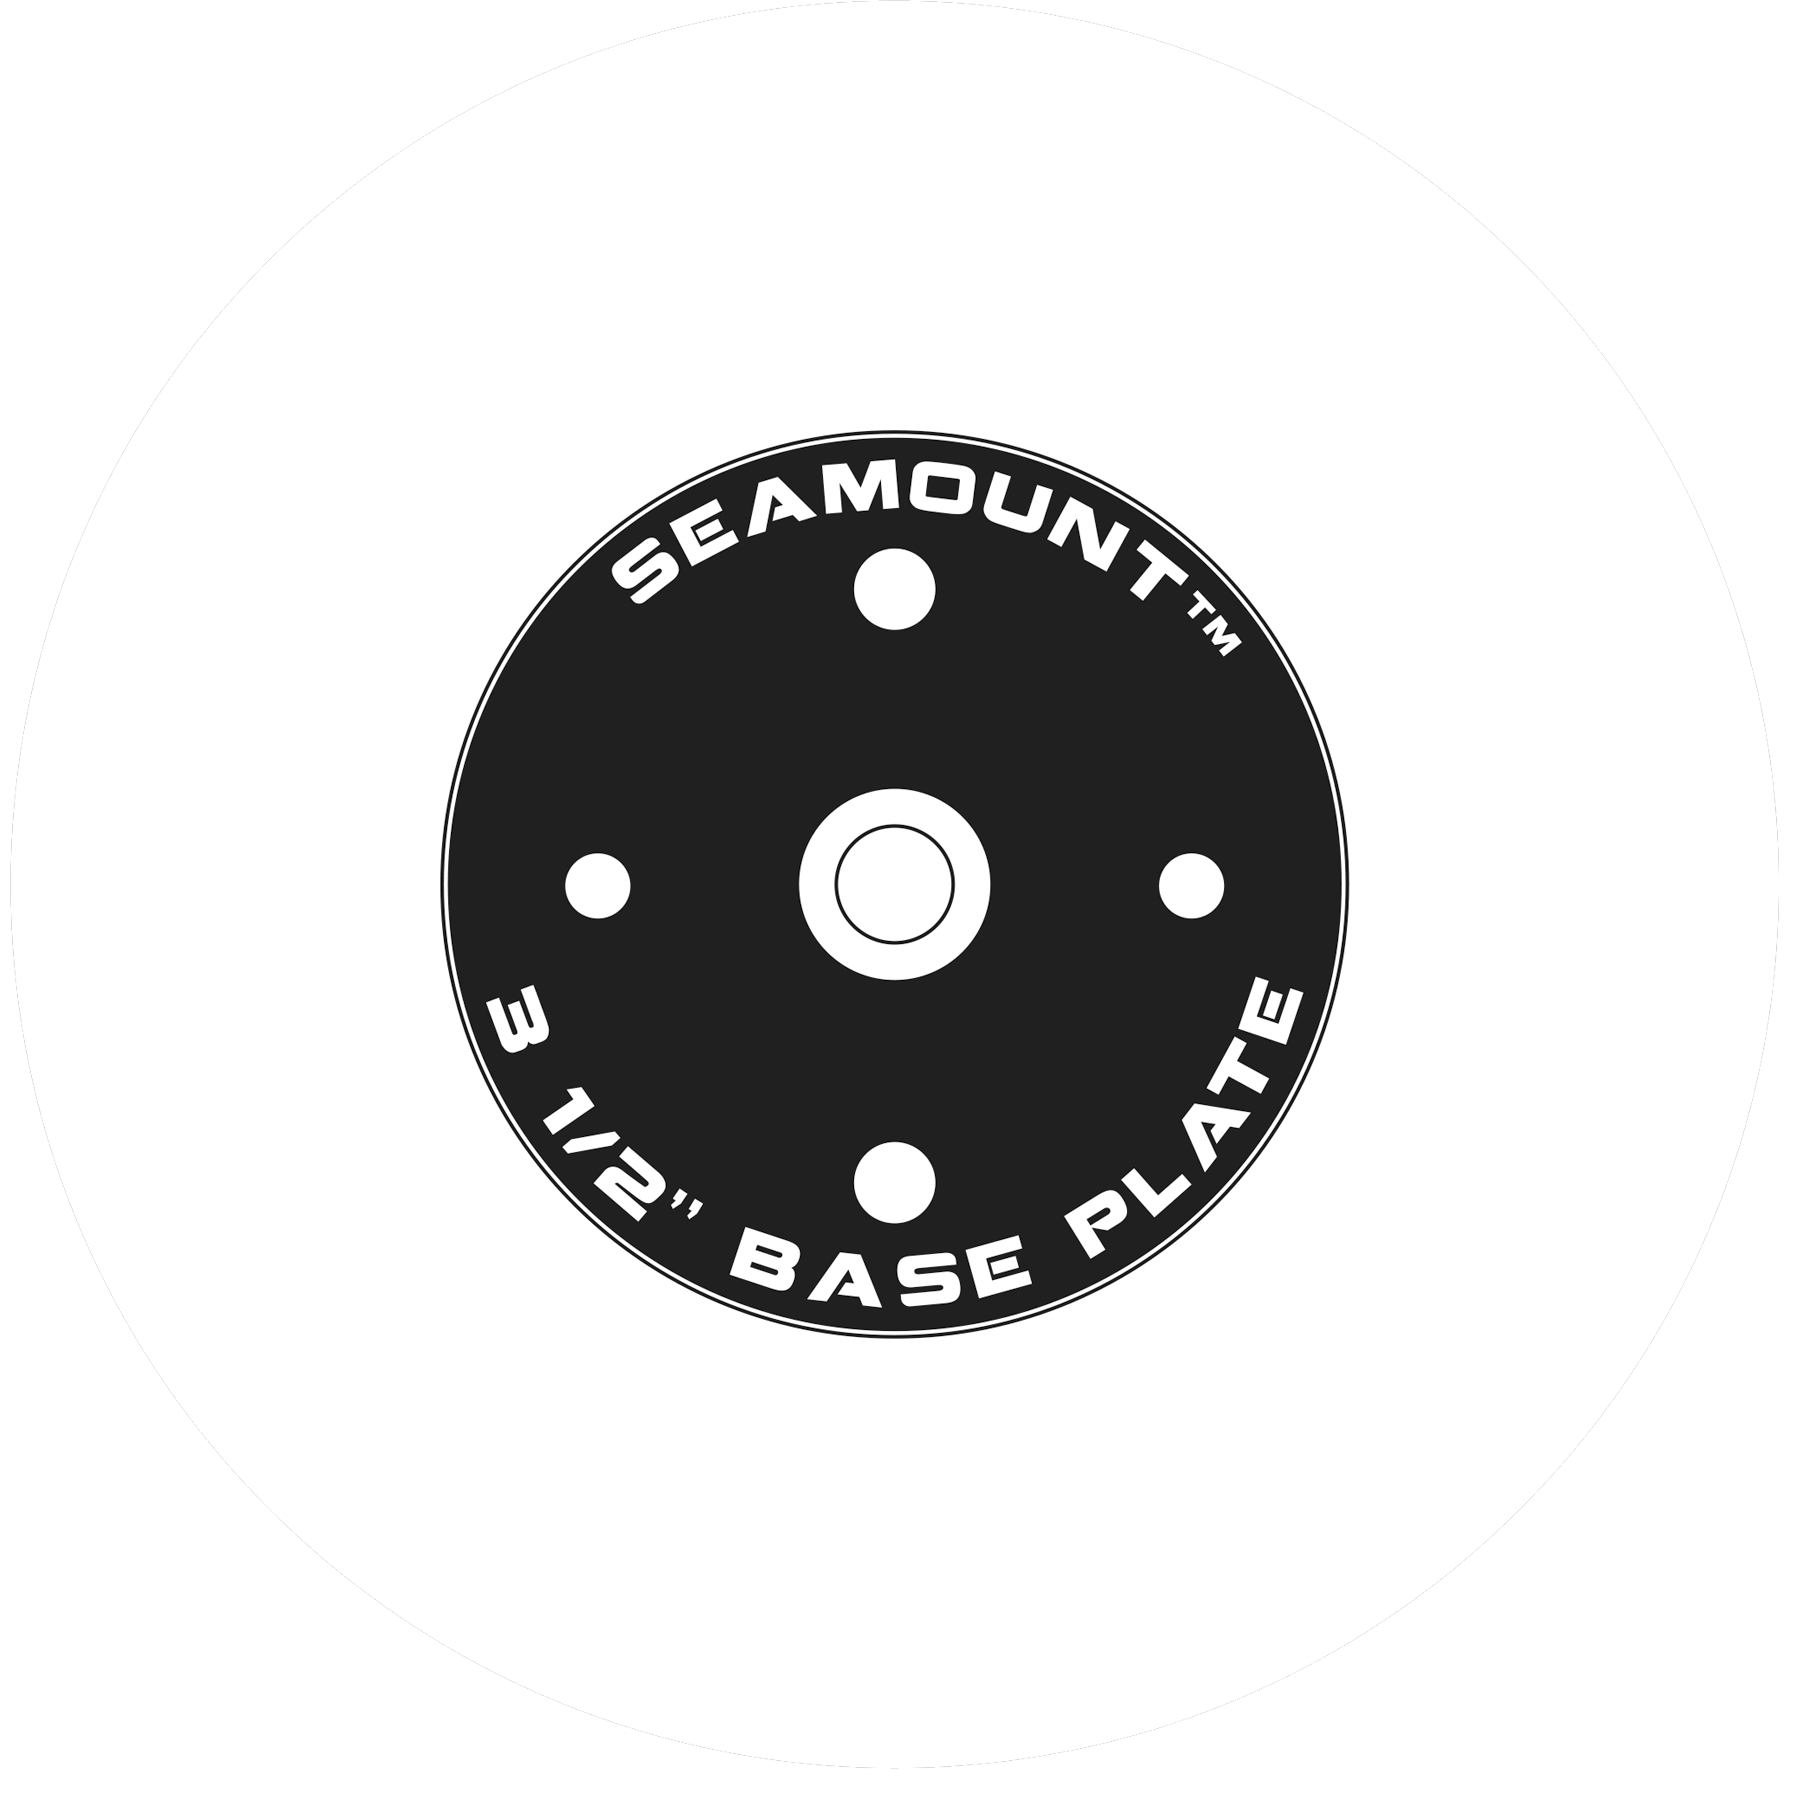 Base Plate for Seamount System for Pau Hana accessories and board